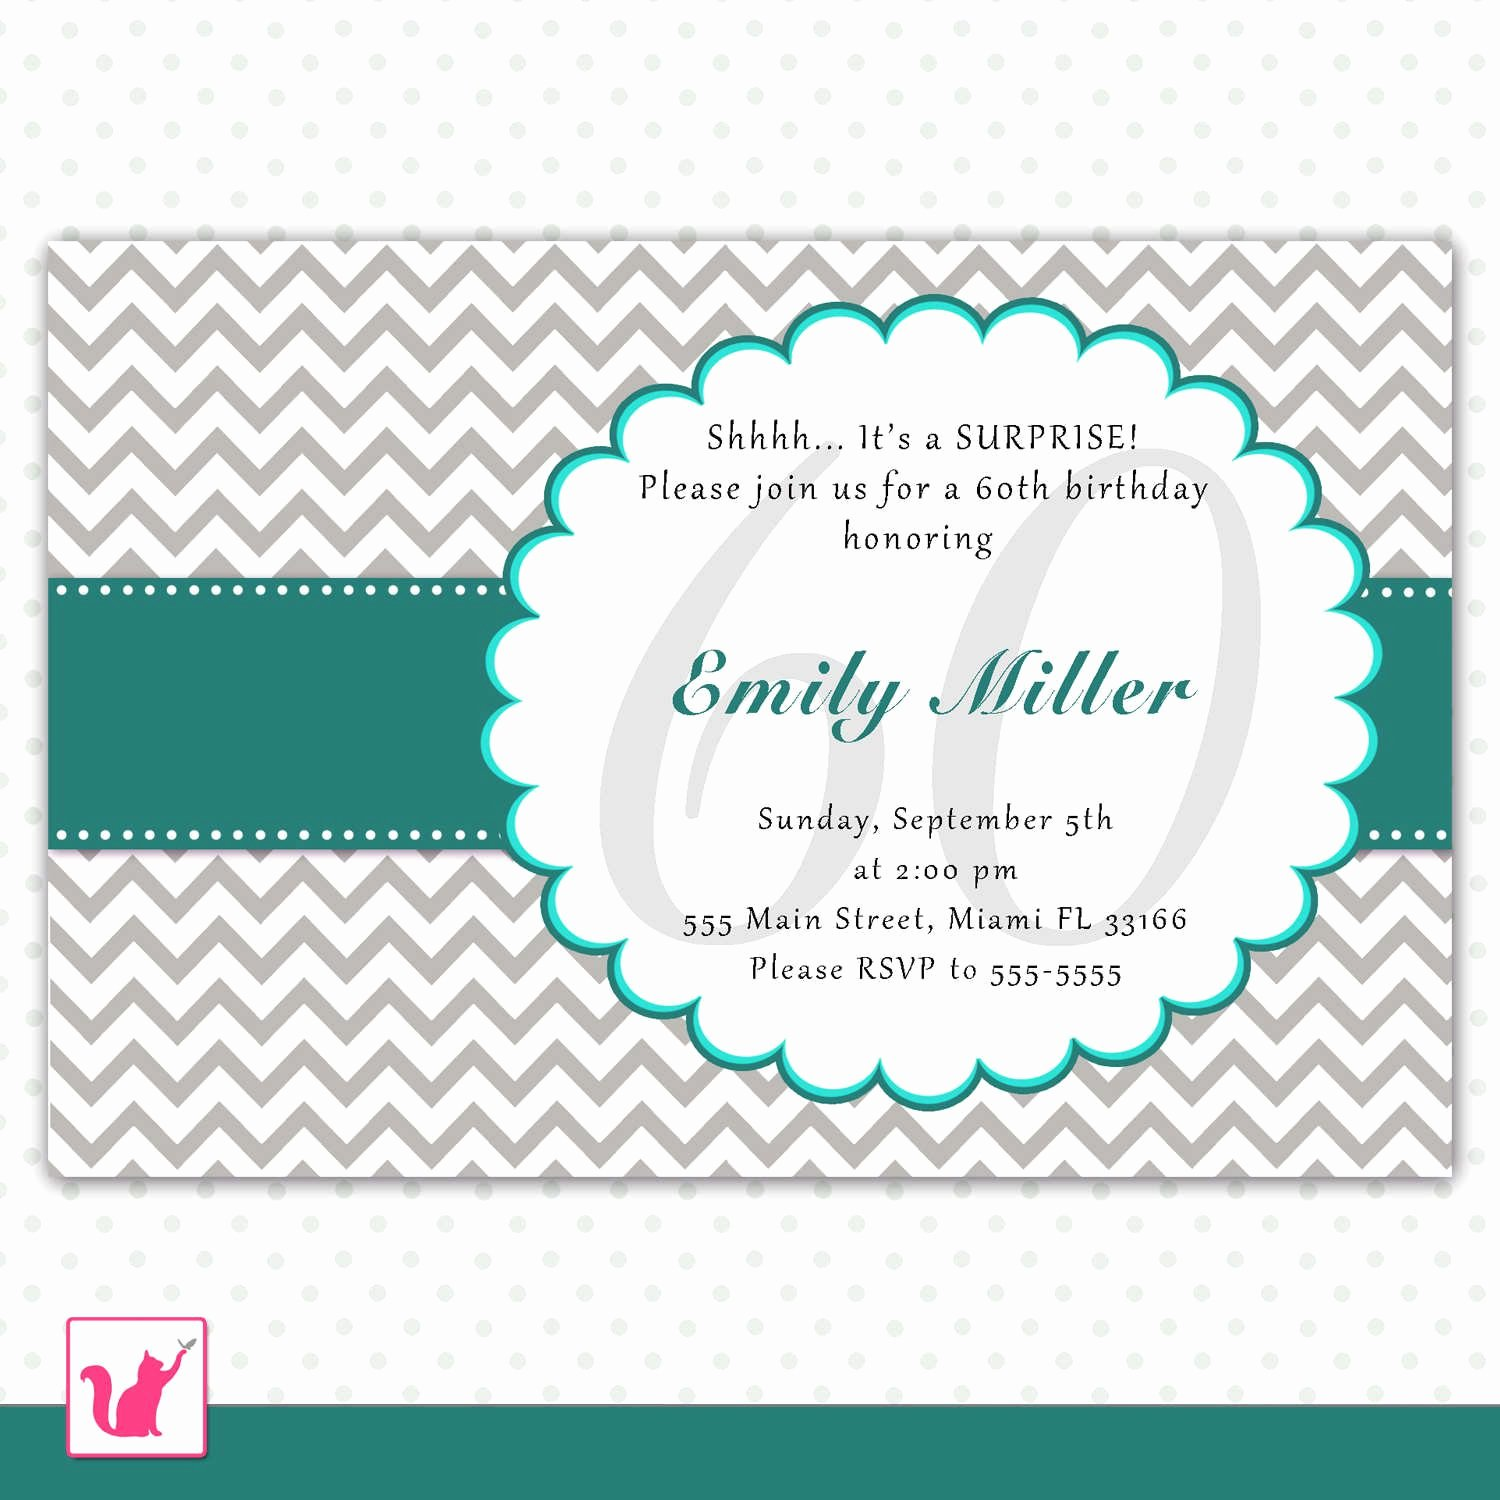 Free Printable Anniversary Invitations Fresh Anniversary Invitations Ideas Anniversary Party Invitations Templates Free Invitations